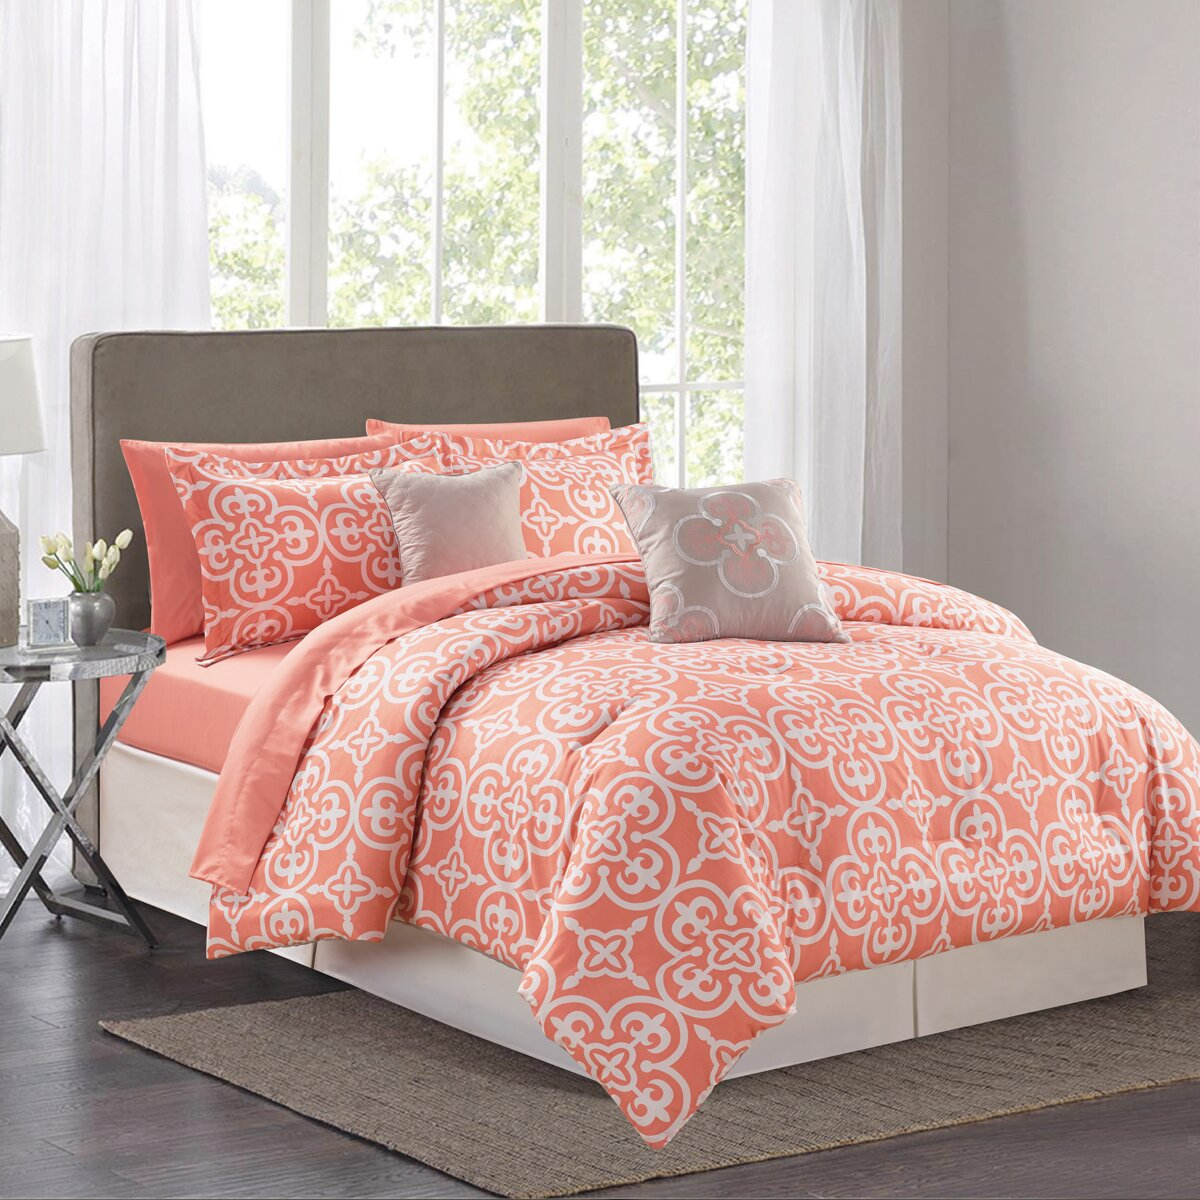 Sweet Home Collection Pottia 9 Piece Queen Bed In A Bag